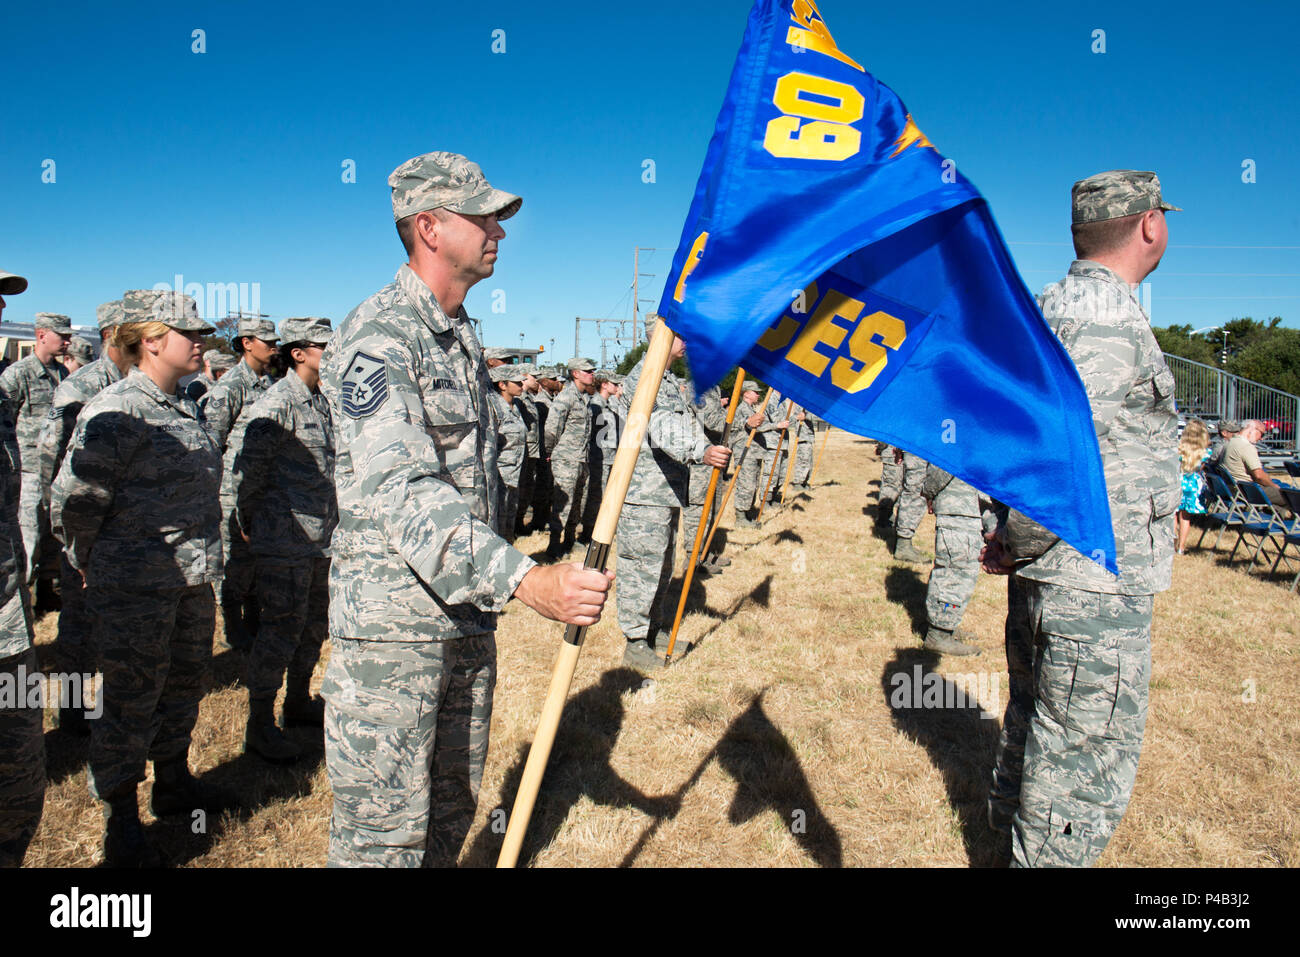 Members of the 60th Mission Support Group, Travis Air Force Base, Calif., stand in formation during the Change of Command Ceremony.  U.S. Air Force Col. George Dietrich relinquished command to U.S. Air Force Col. Lance Clark, June 24, 2016. (U.S. Air Force photo by Louis Briscese/Released) - Stock Image